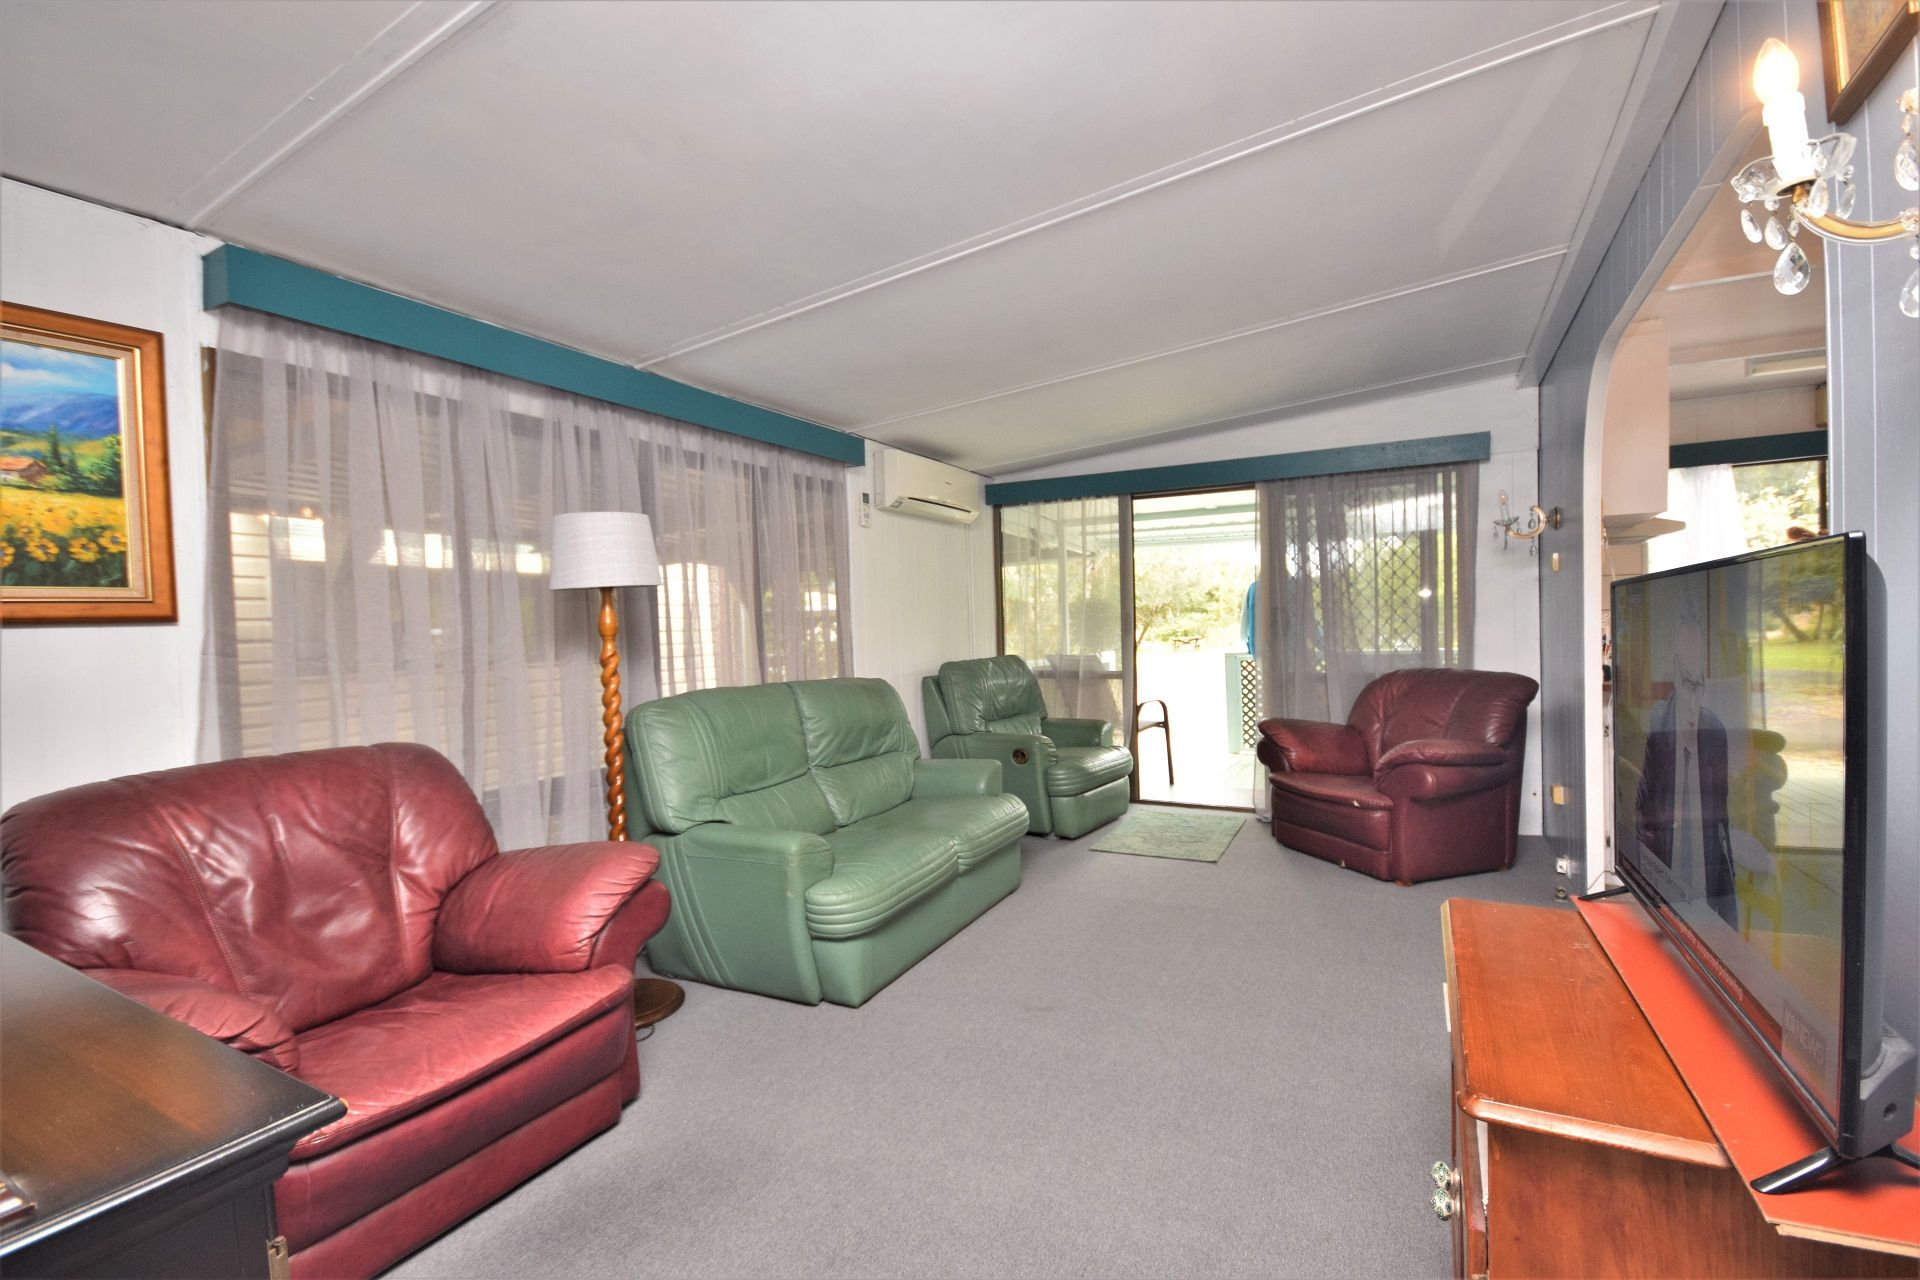 Nambucca Heads Real Estate: Retire to the Seaside